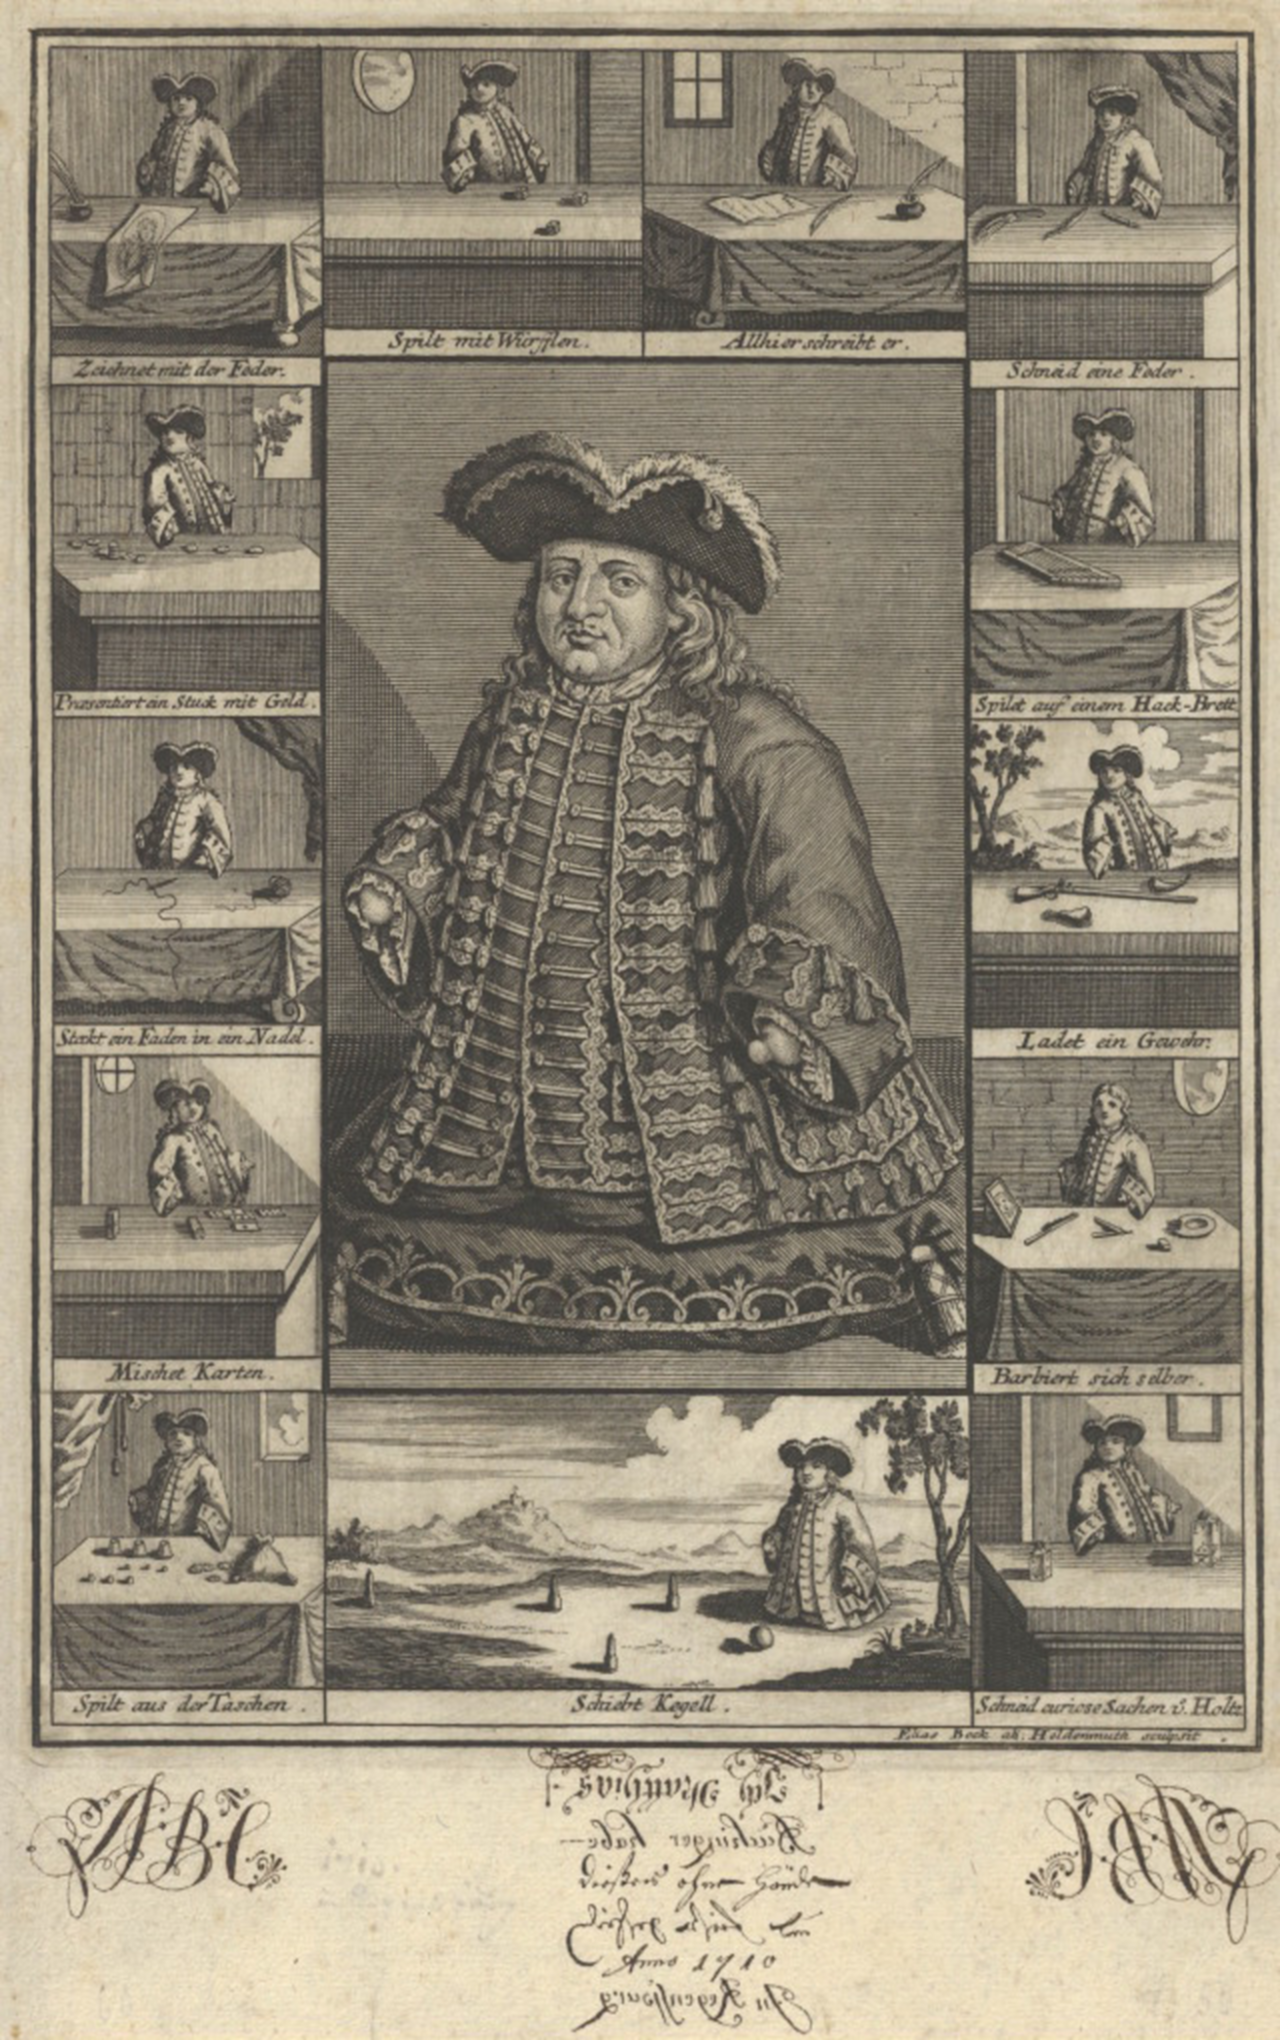 The unbelievable story of Matthias Buchinger, 18th century polymath, magician and artist